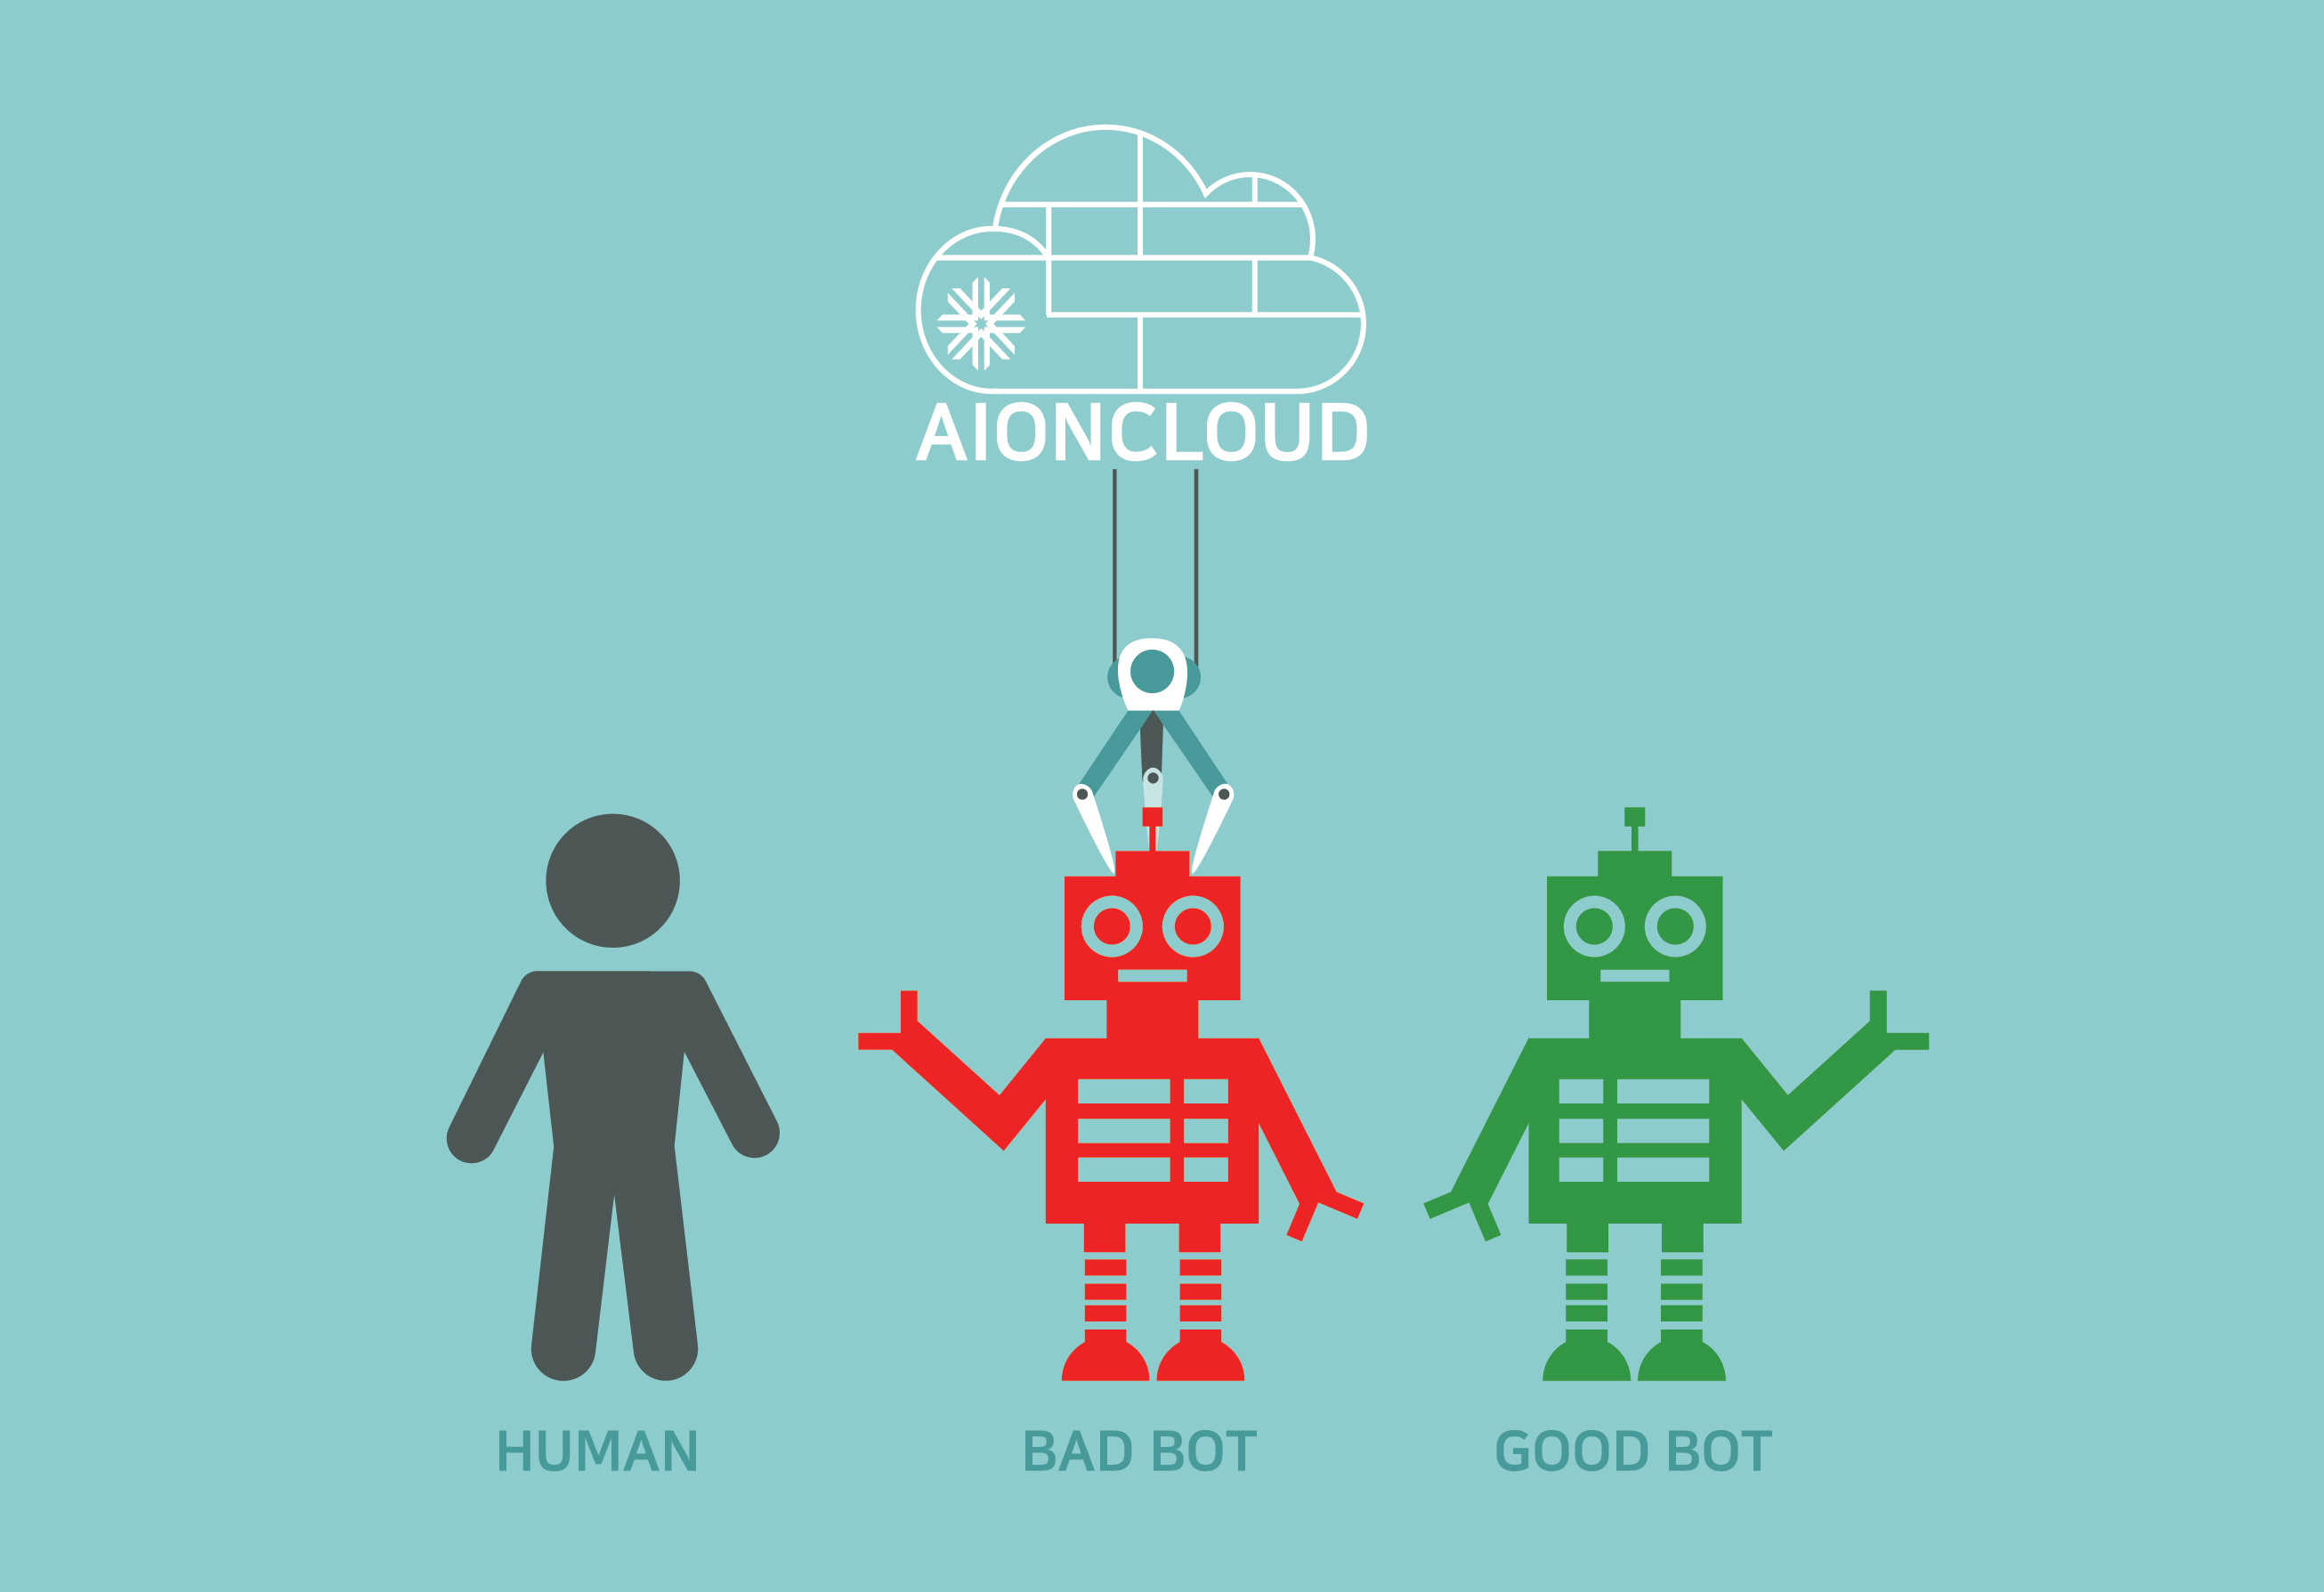 How to block Malicious Bot - AIONCLOUD